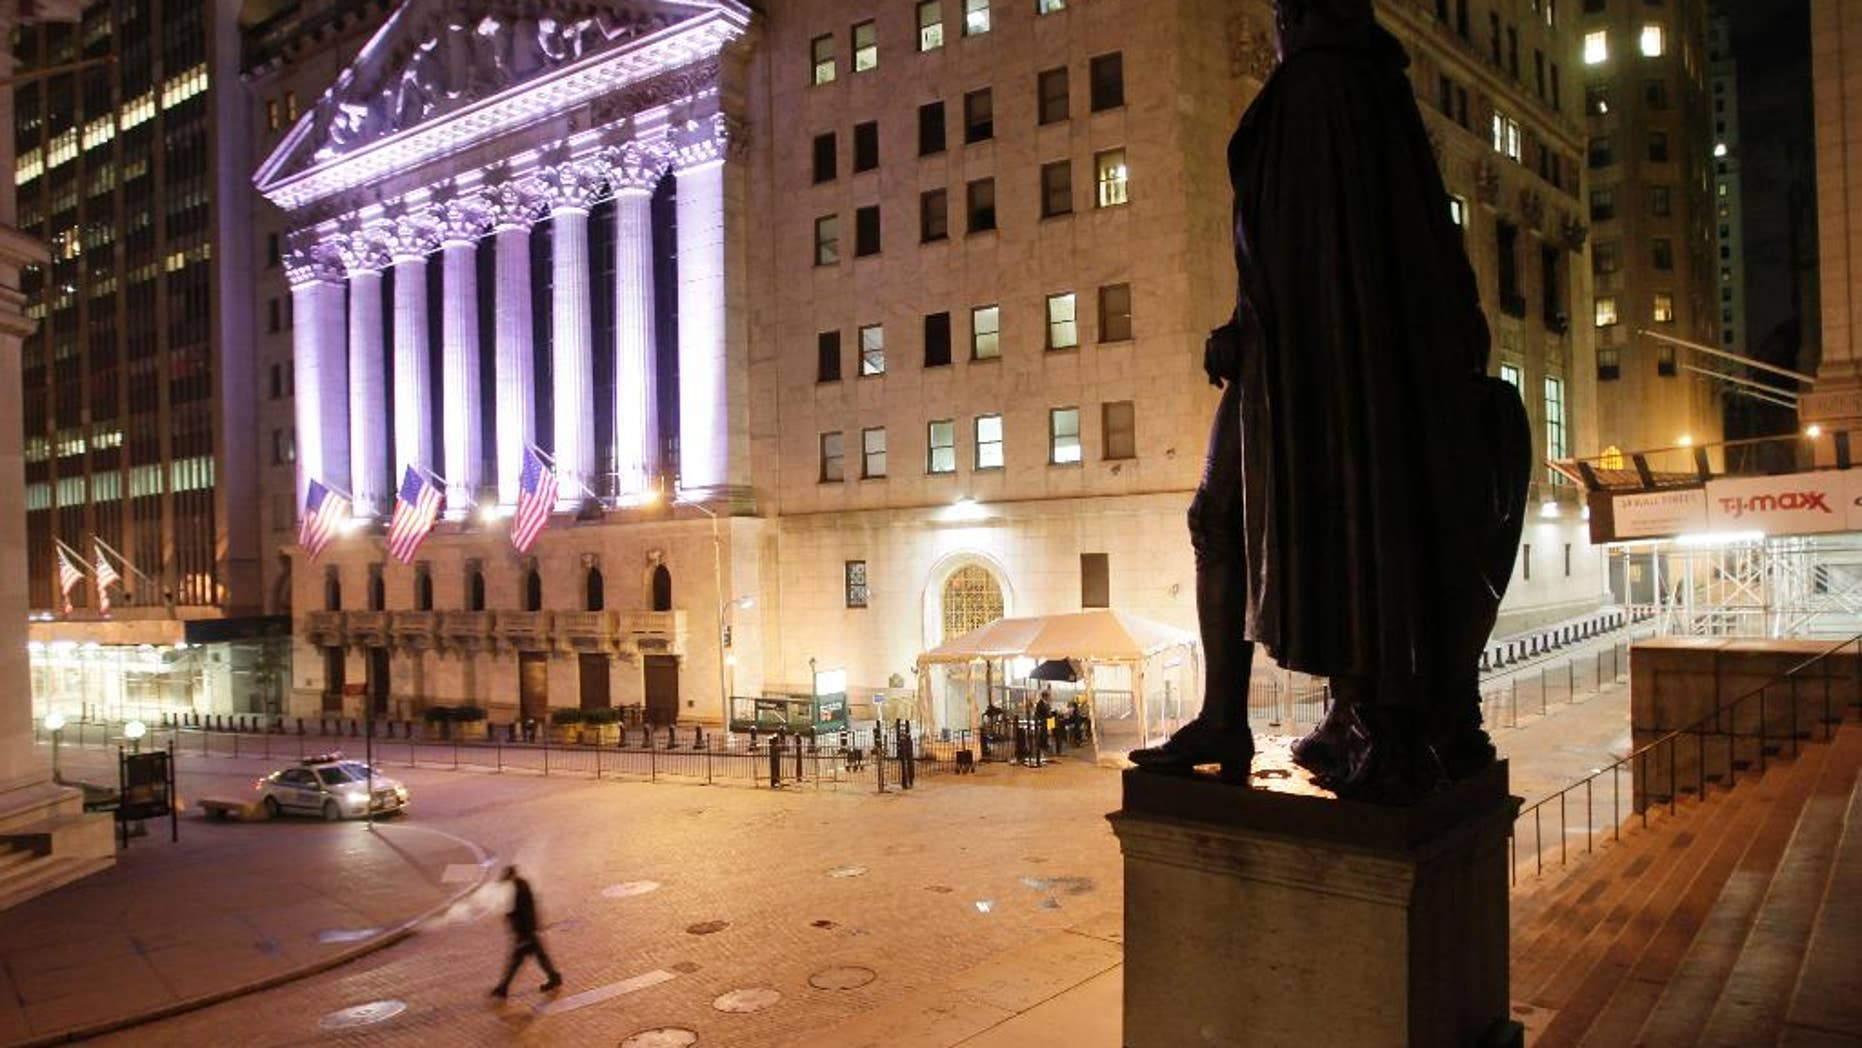 A statue of George Washington stands near The New York Stock Exchange, background, Wednesday, Oct. 8, 2014 in New York. World stock markets mostly retreated Thursday Nov. 6, 2014 as investors awaited a European Central Bank policy meeting and a U.S. jobs report that might deliver a verdict on whether the Federal Reserve's withdrawal of stimulus was warranted. (AP Photo/Mark Lennihan)